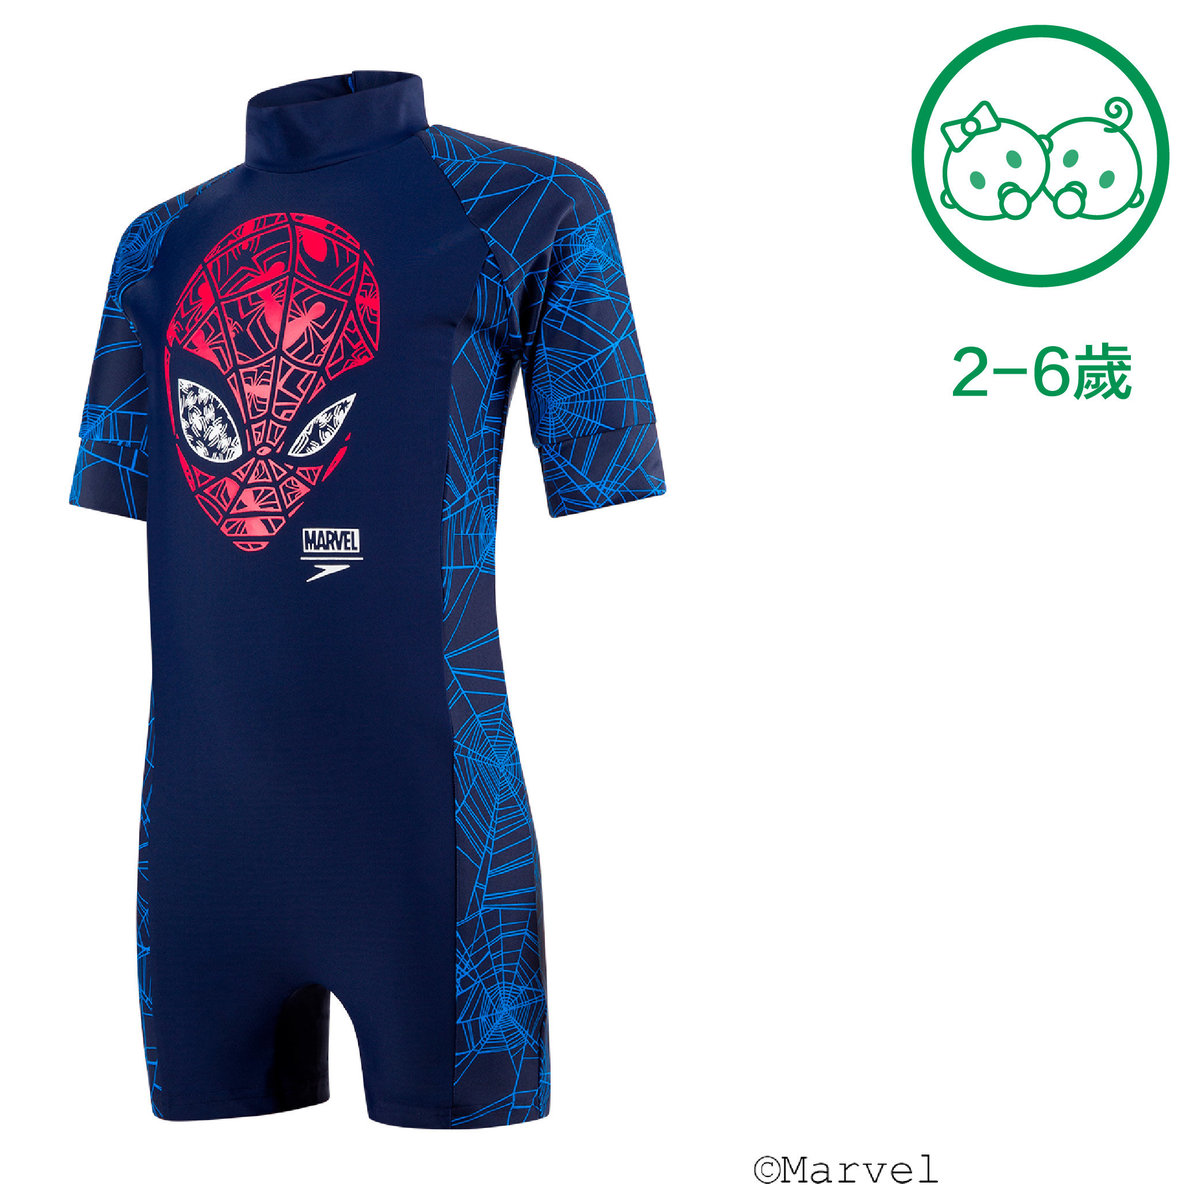 MARVEL SPIDERMAN Infant (aged 2-6) Sun Protection Suit|Licensed by Disney